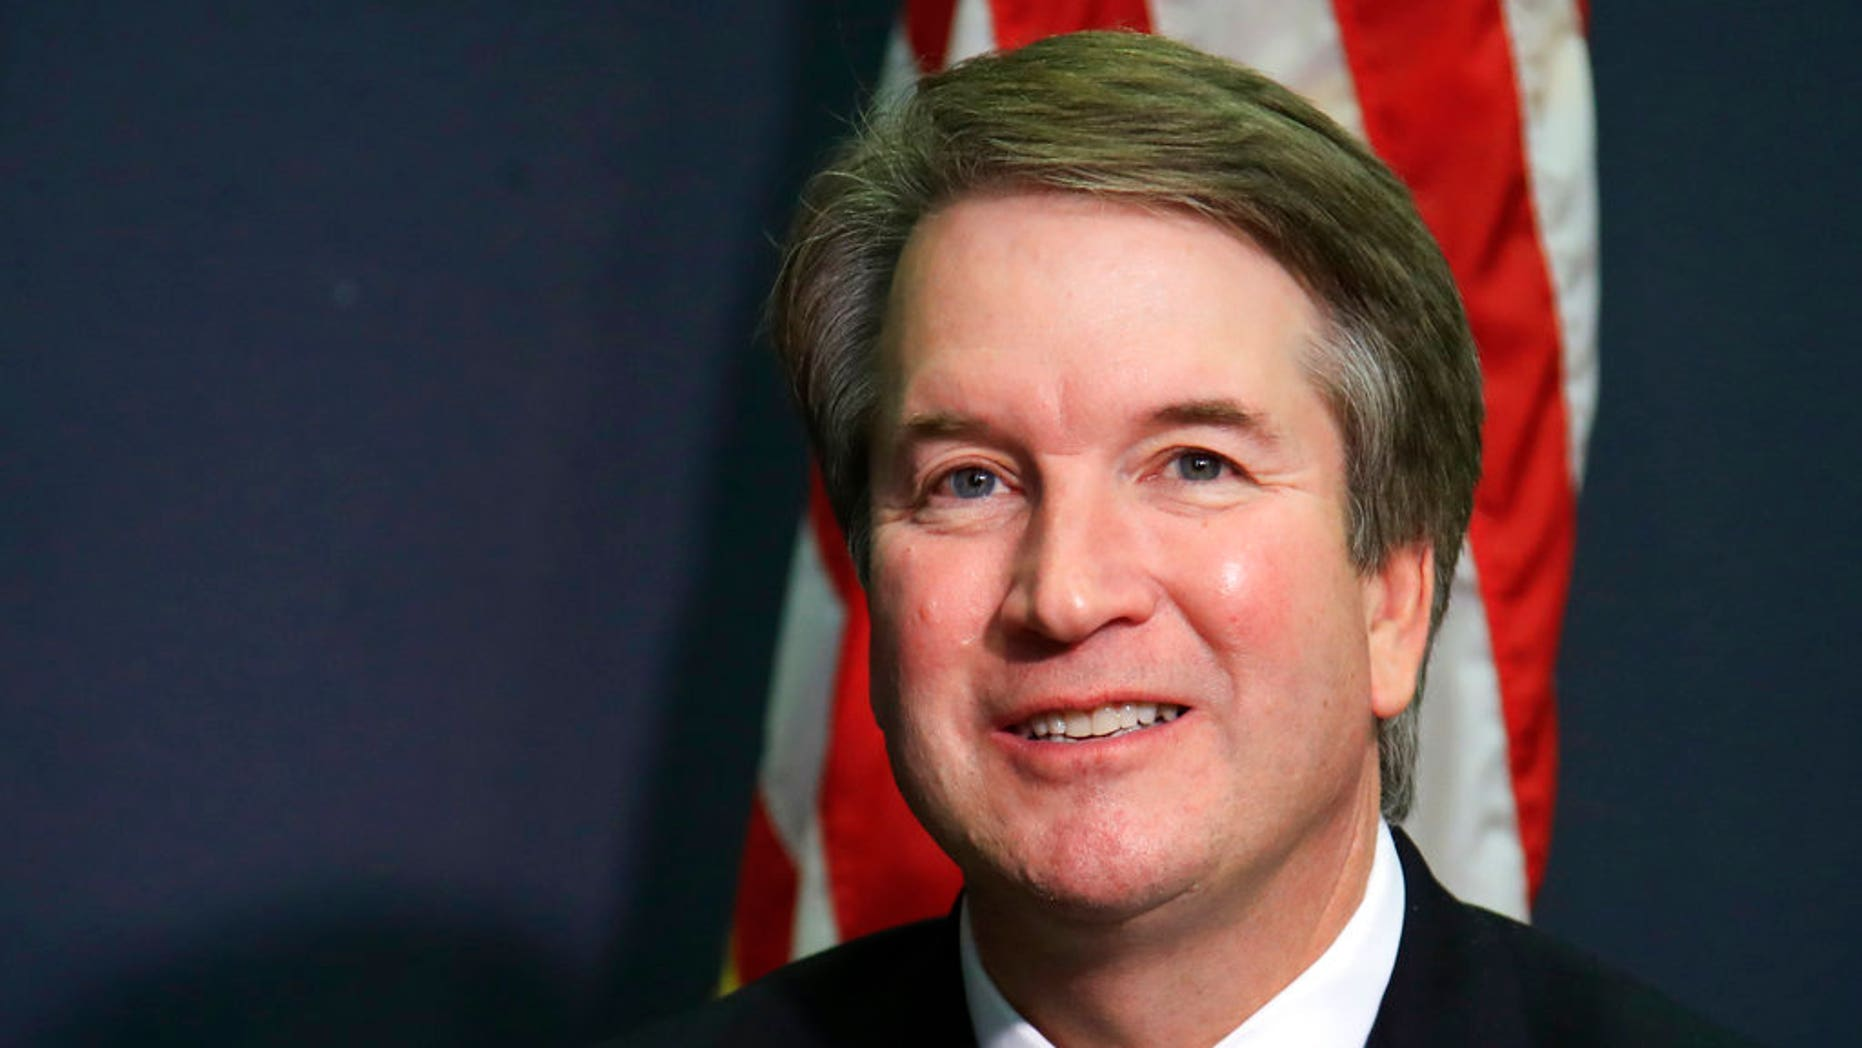 Supreme Court nominee Brett Kavanaugh glances at reporters during a meeting with Sen. James Lankford, R-Okla., on Capitol Hill in Washington, Thursday, July 19, 2018. (AP Photo/Manuel Balce Ceneta)